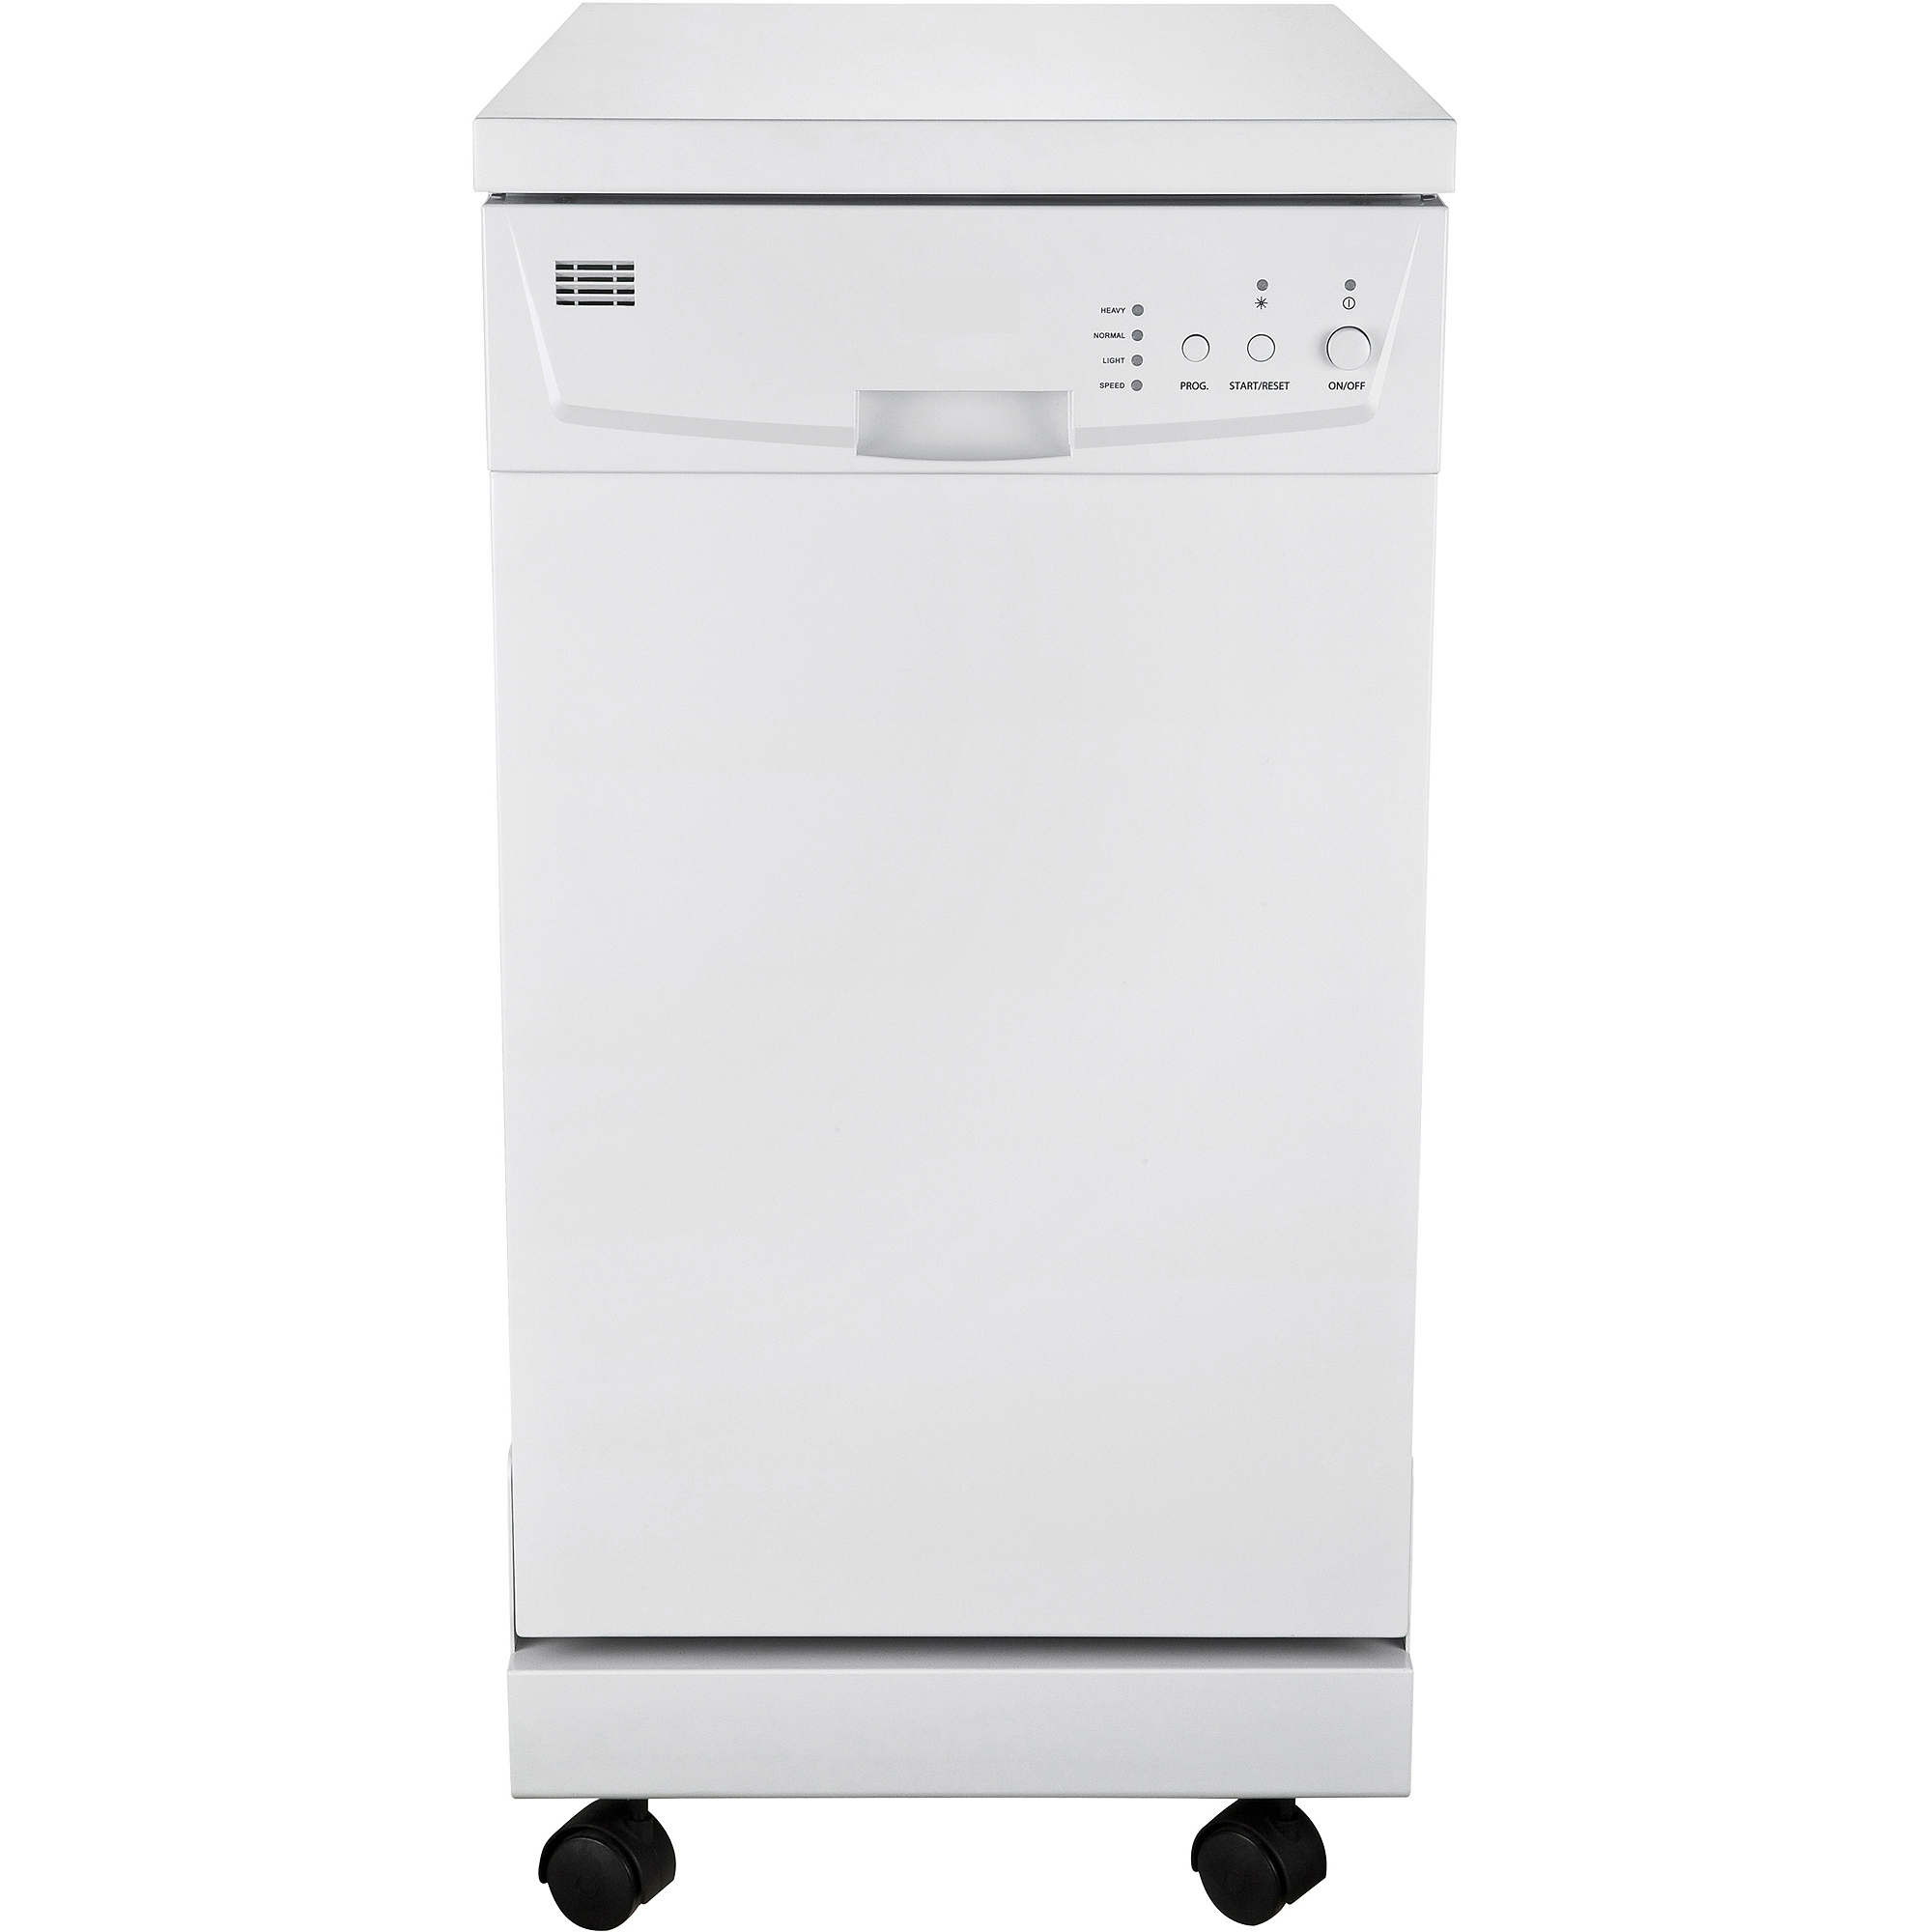 18 Portable Dishwasher Curtis International Curtis International